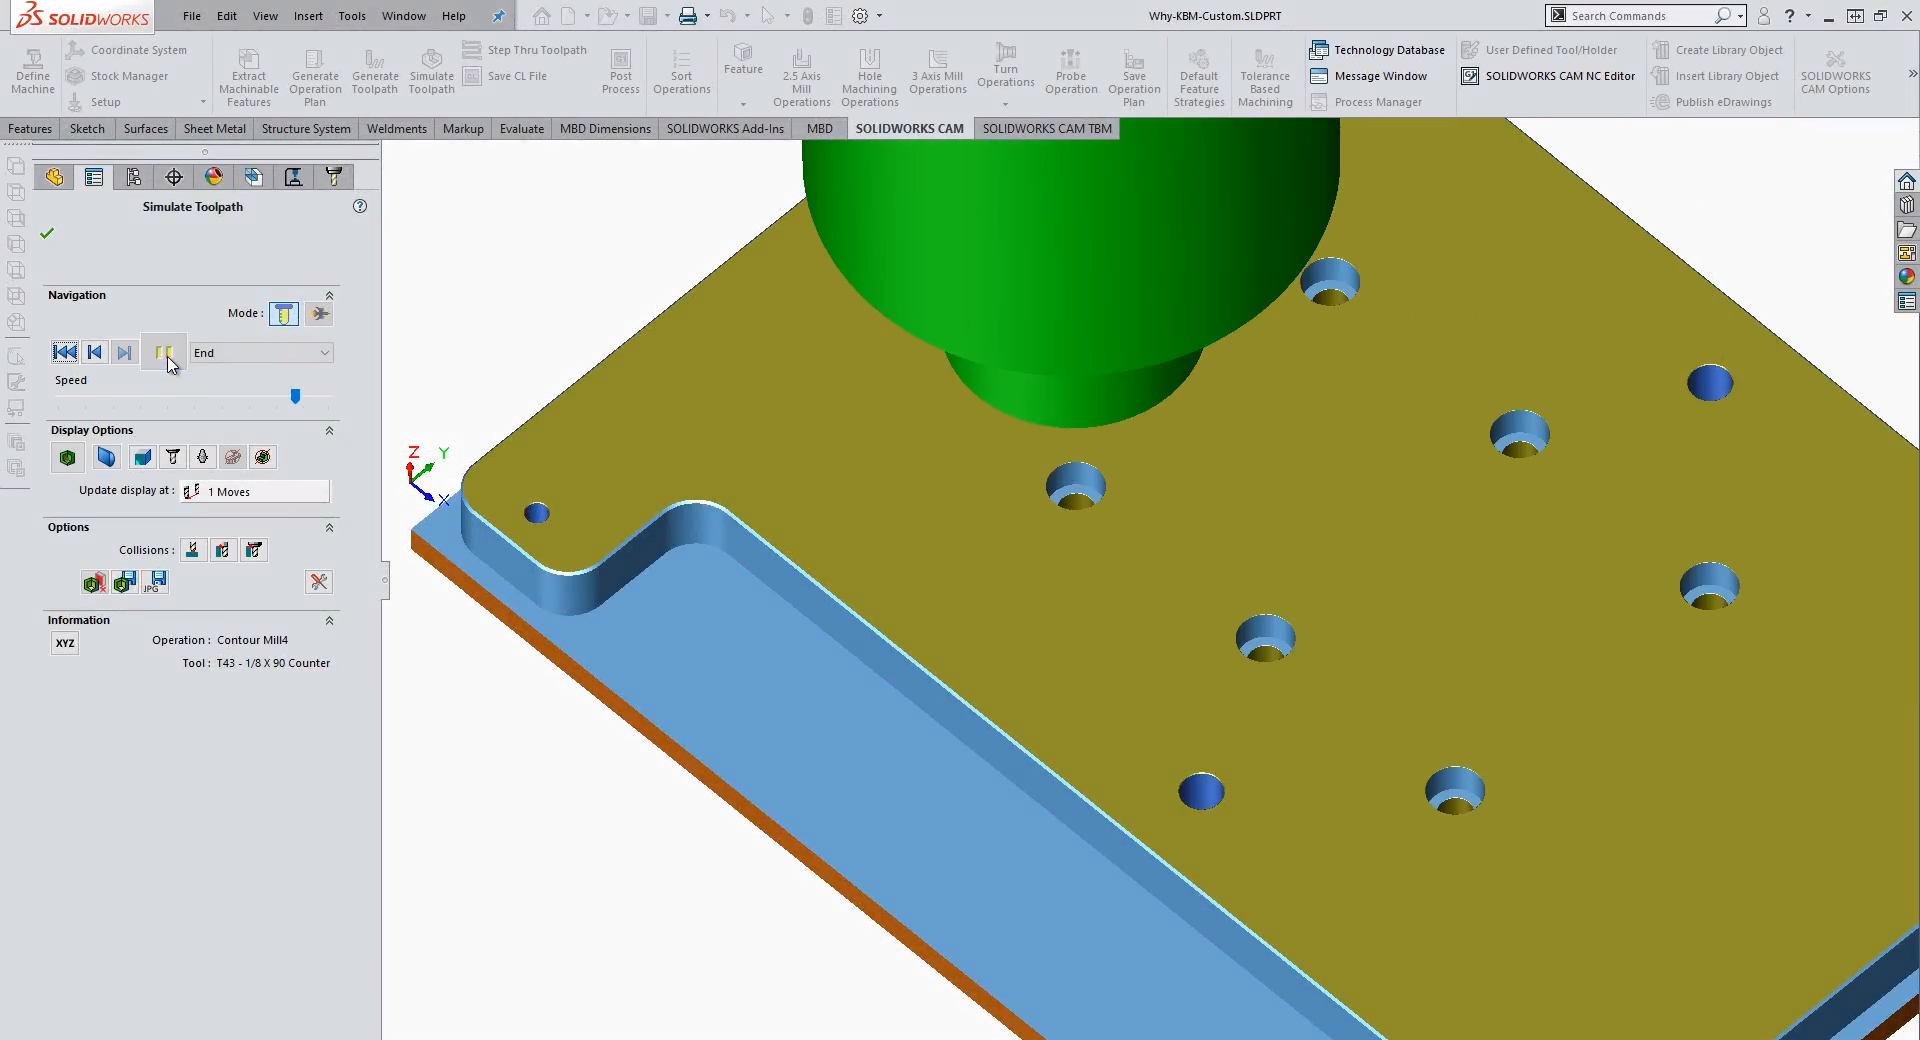 How to Use Rules Based Machining in SOLIDWORKS CAM